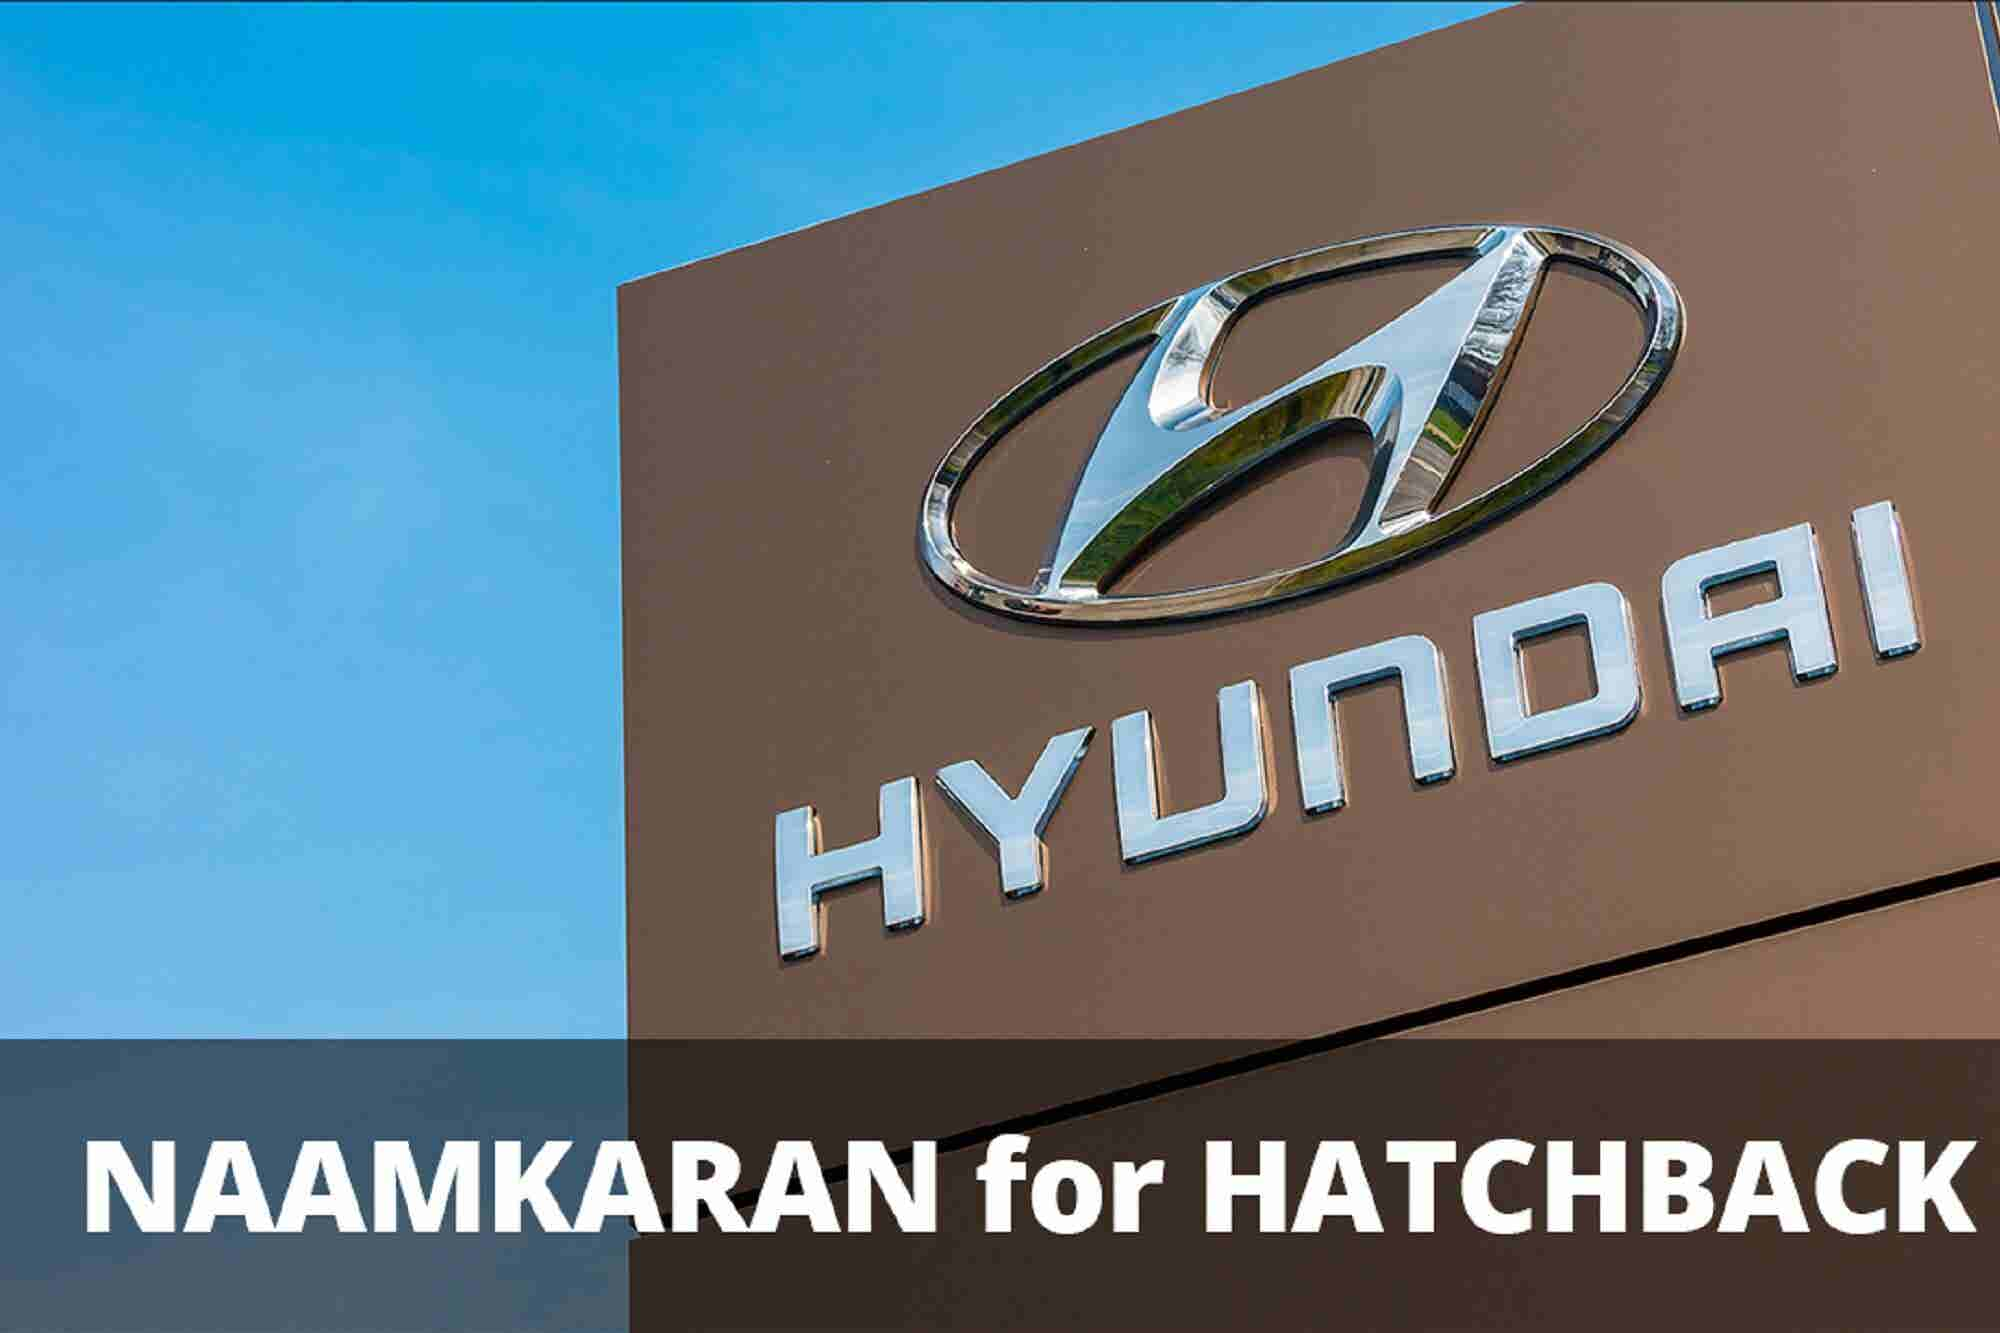 WhatsApp's Storage Issues Are Resolved & Hyundai's New Naming Campaign: 4 Things to Know Today